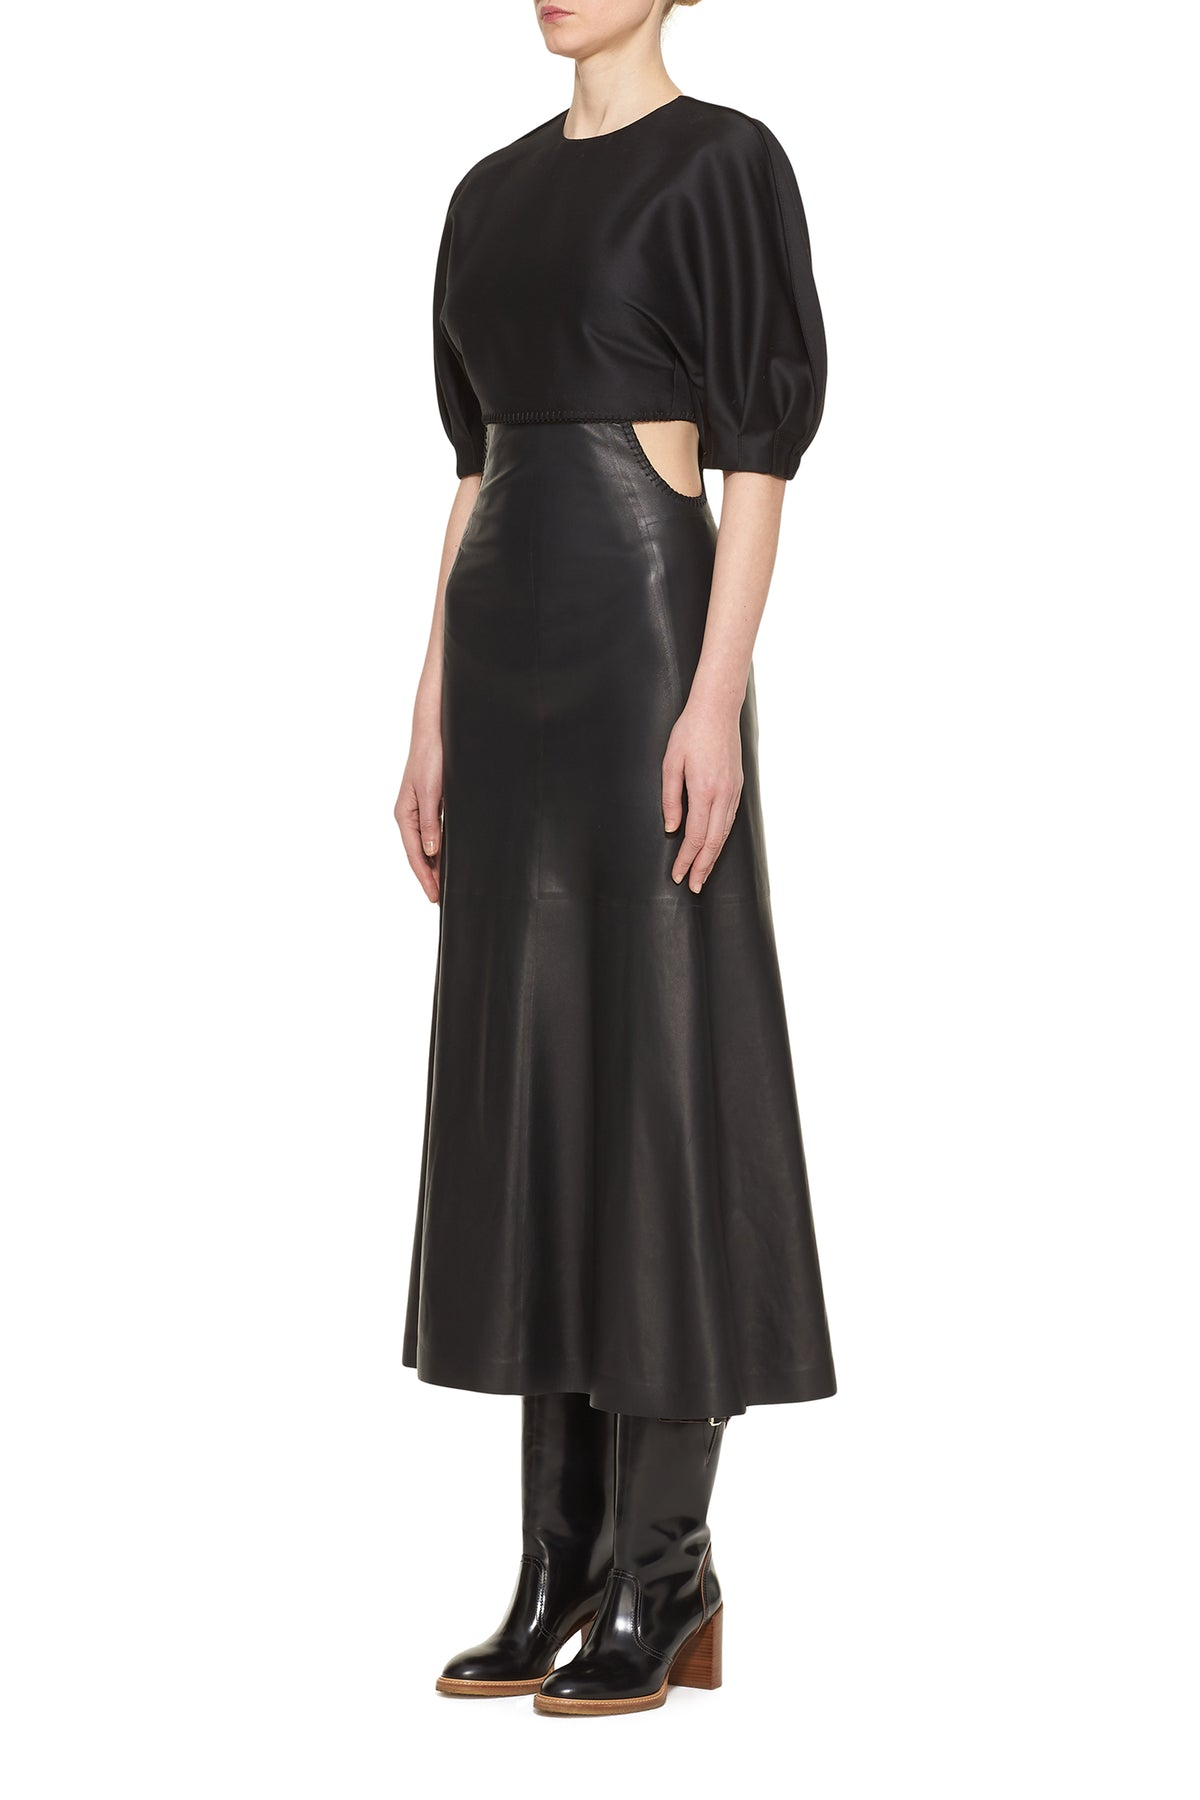 Monod Dress With Leather Skirt